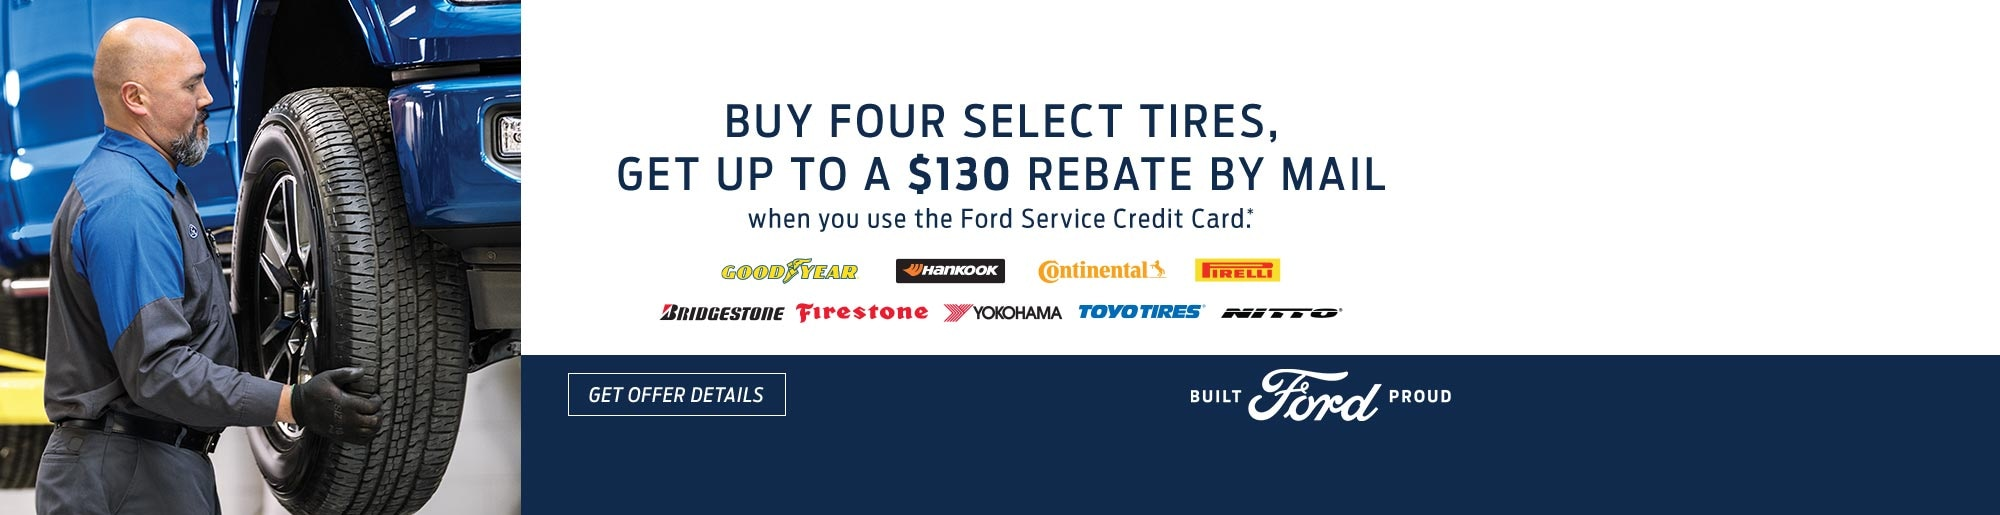 Build Price And Configure Your New Ford Valley Ford Truck >> Jones West Ford New Used Ford Dealership In Reno Serving Sparks